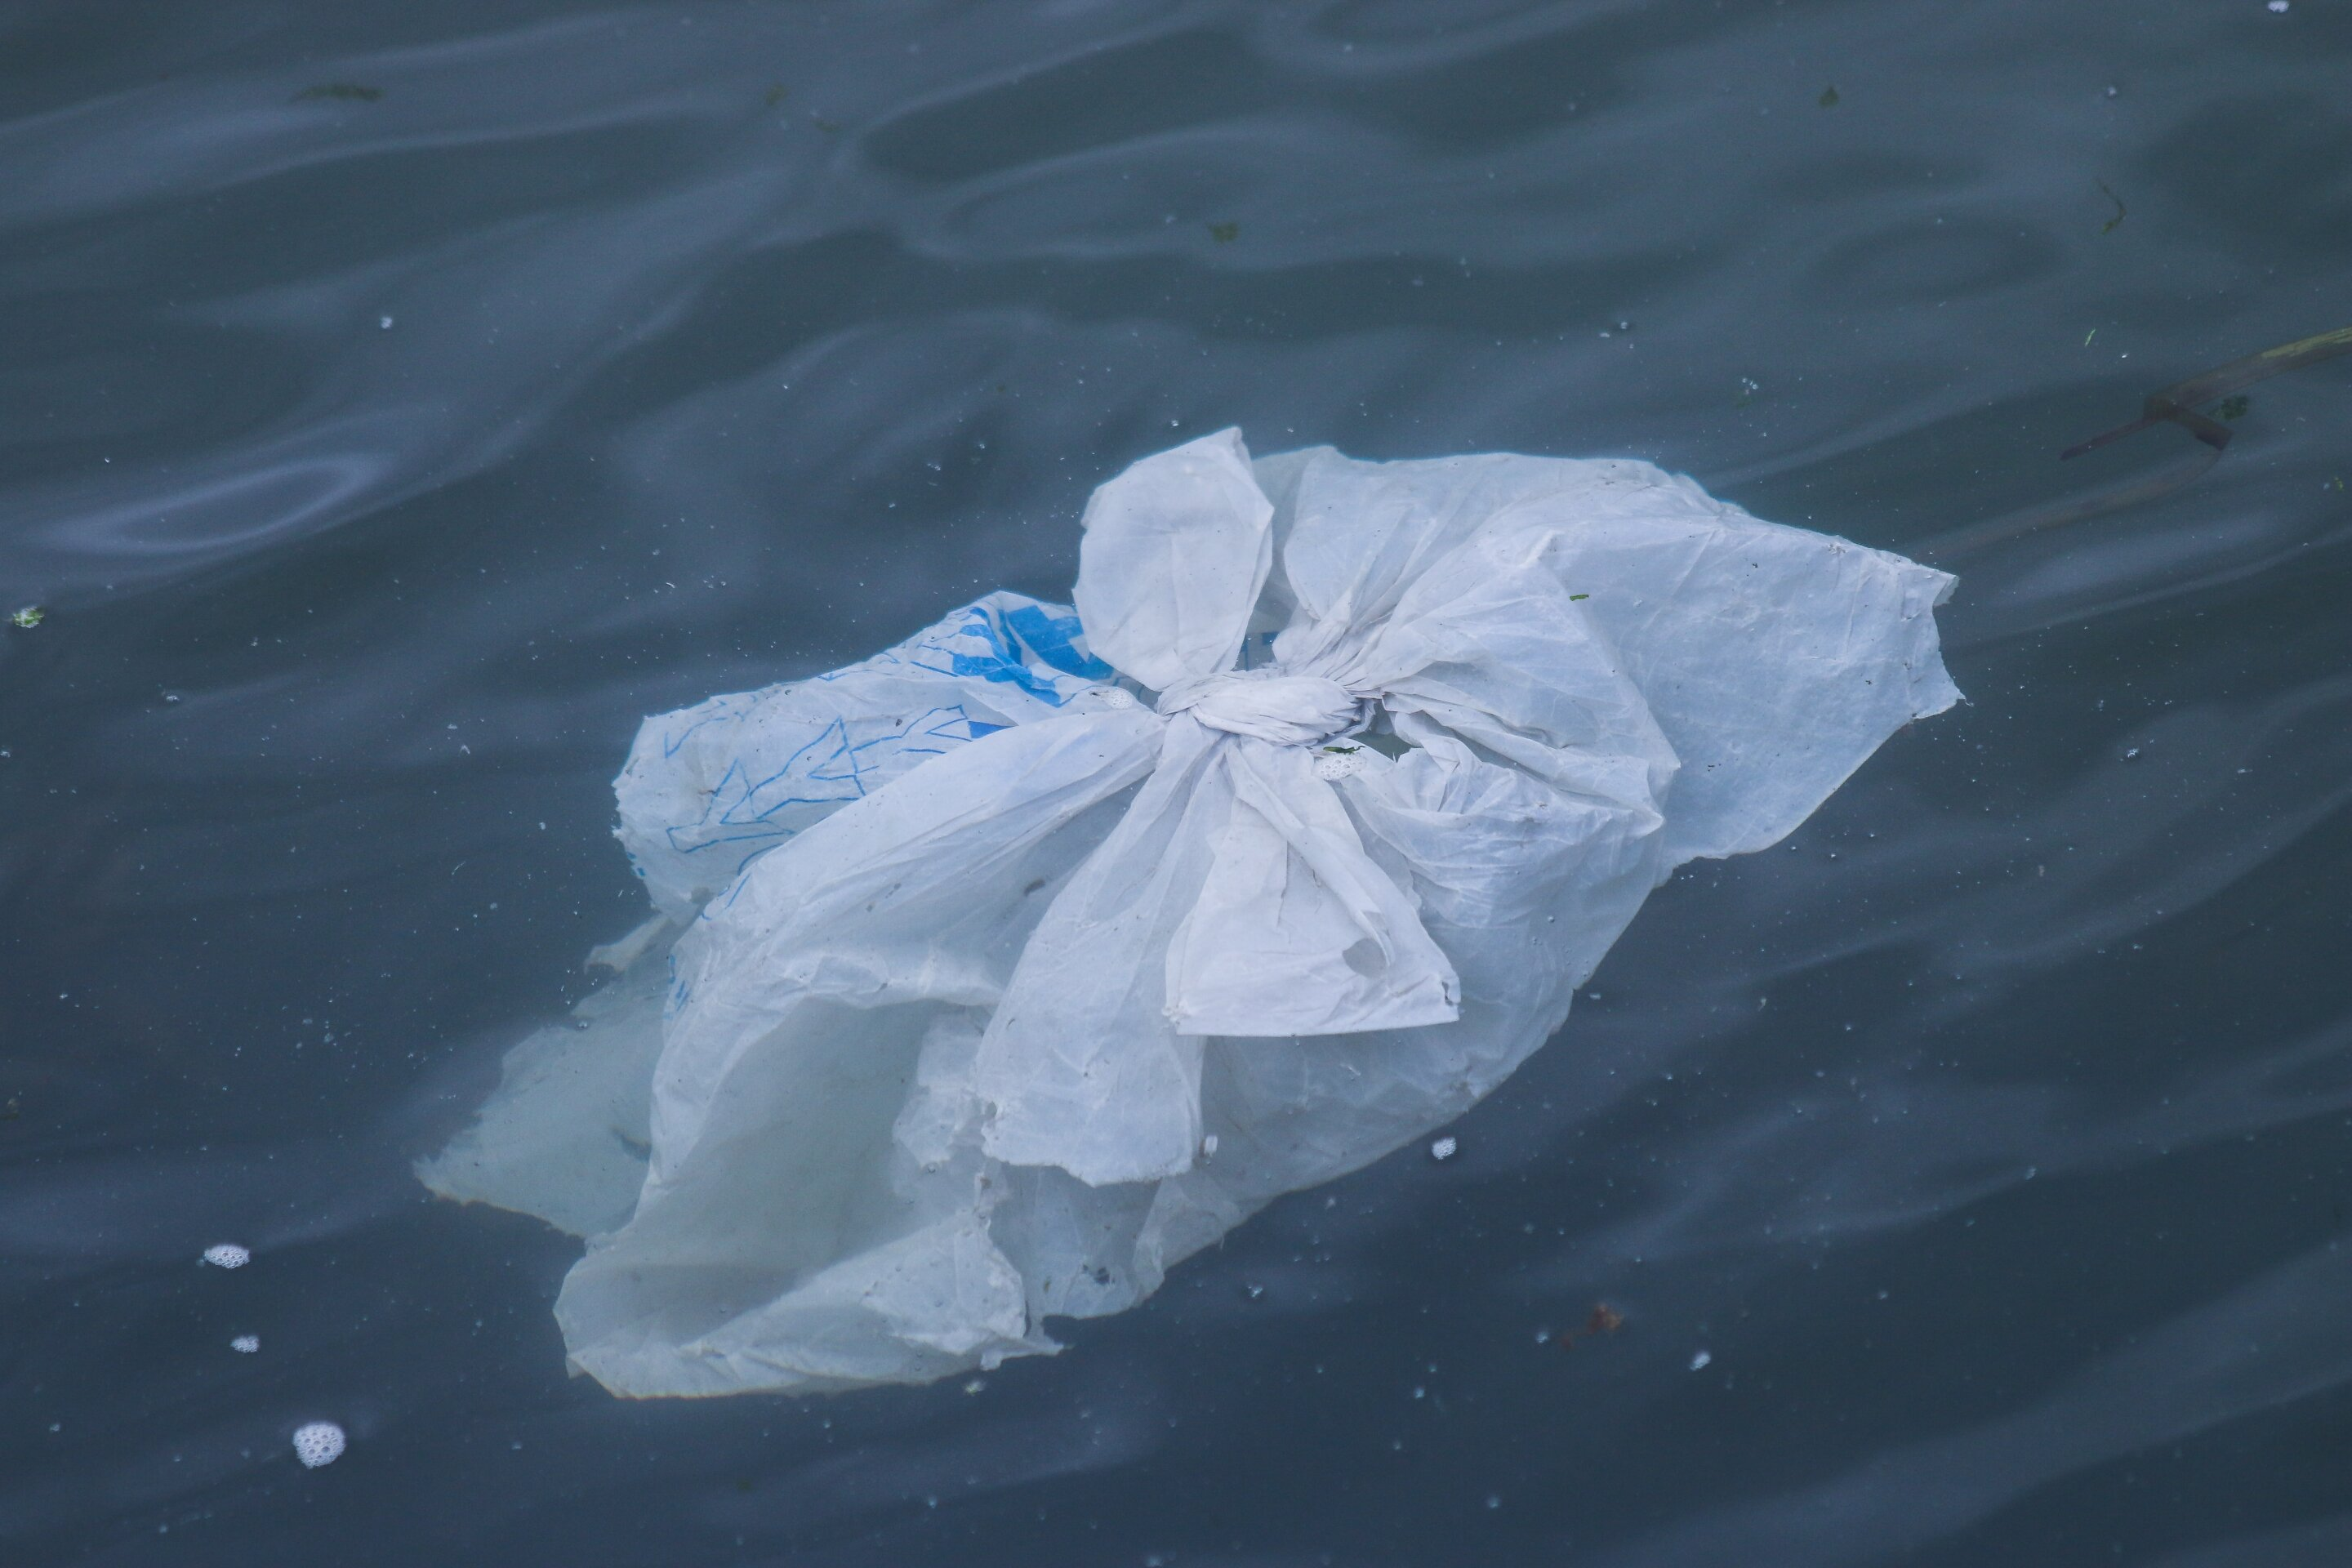 Research reveals how much plastic debris is currently floating in the Mediterranean Sea